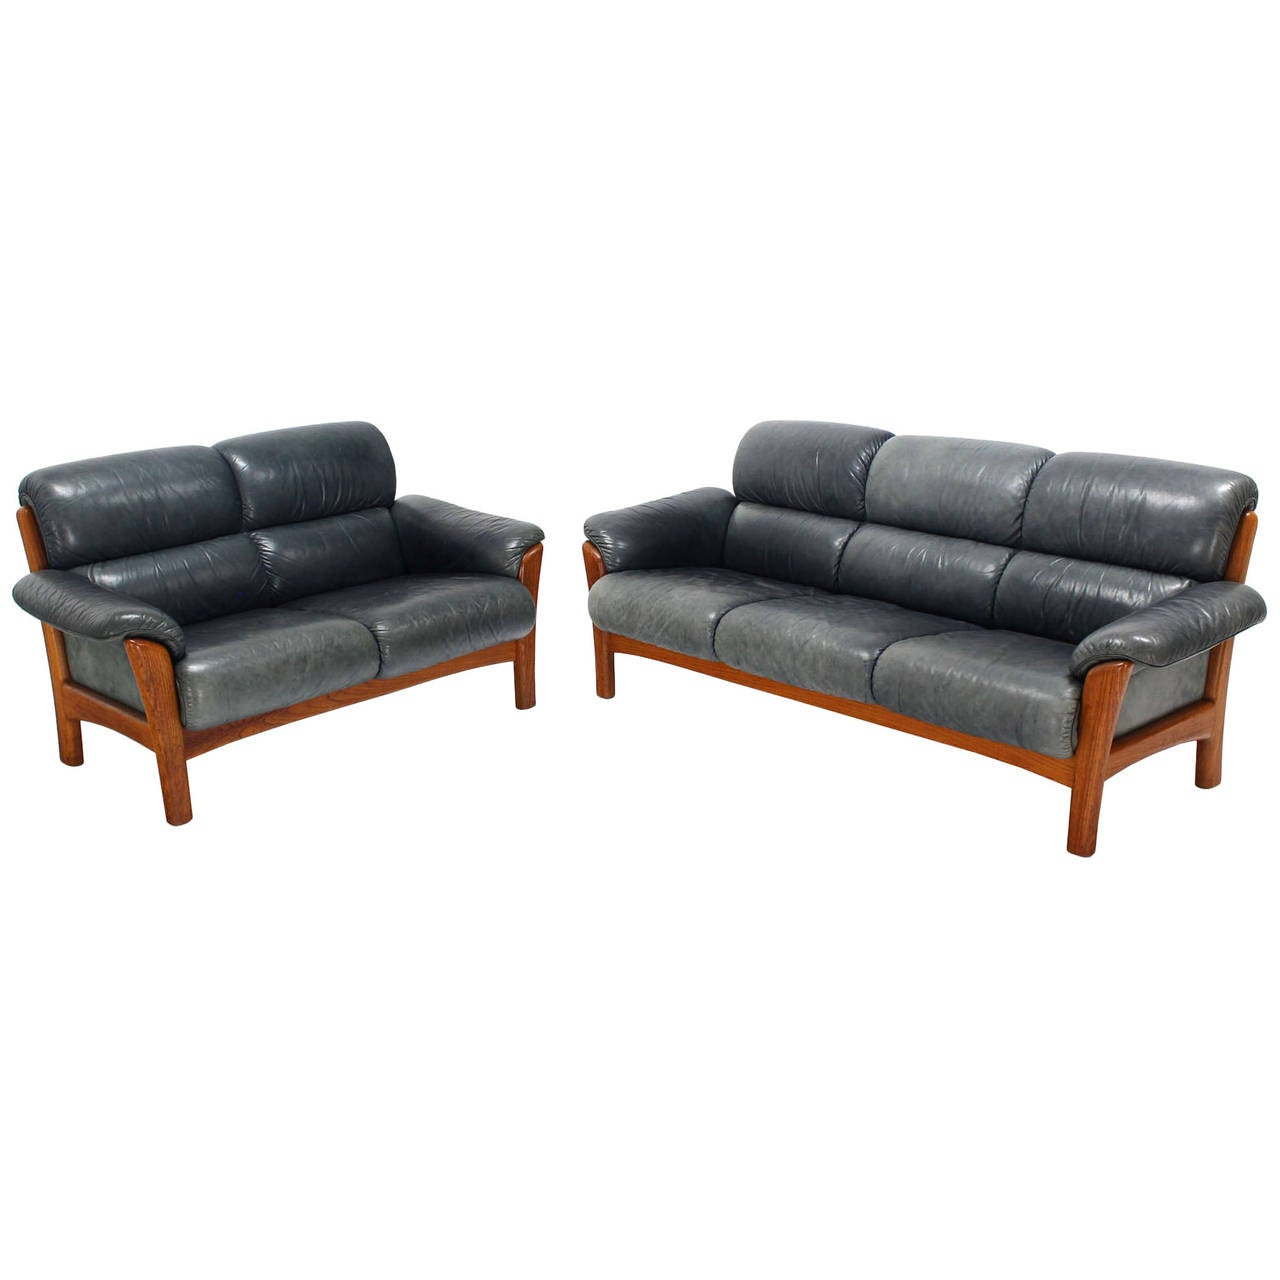 Danish Modern Leather and Teak Living Room Set, Sofa and Loveseat at ...